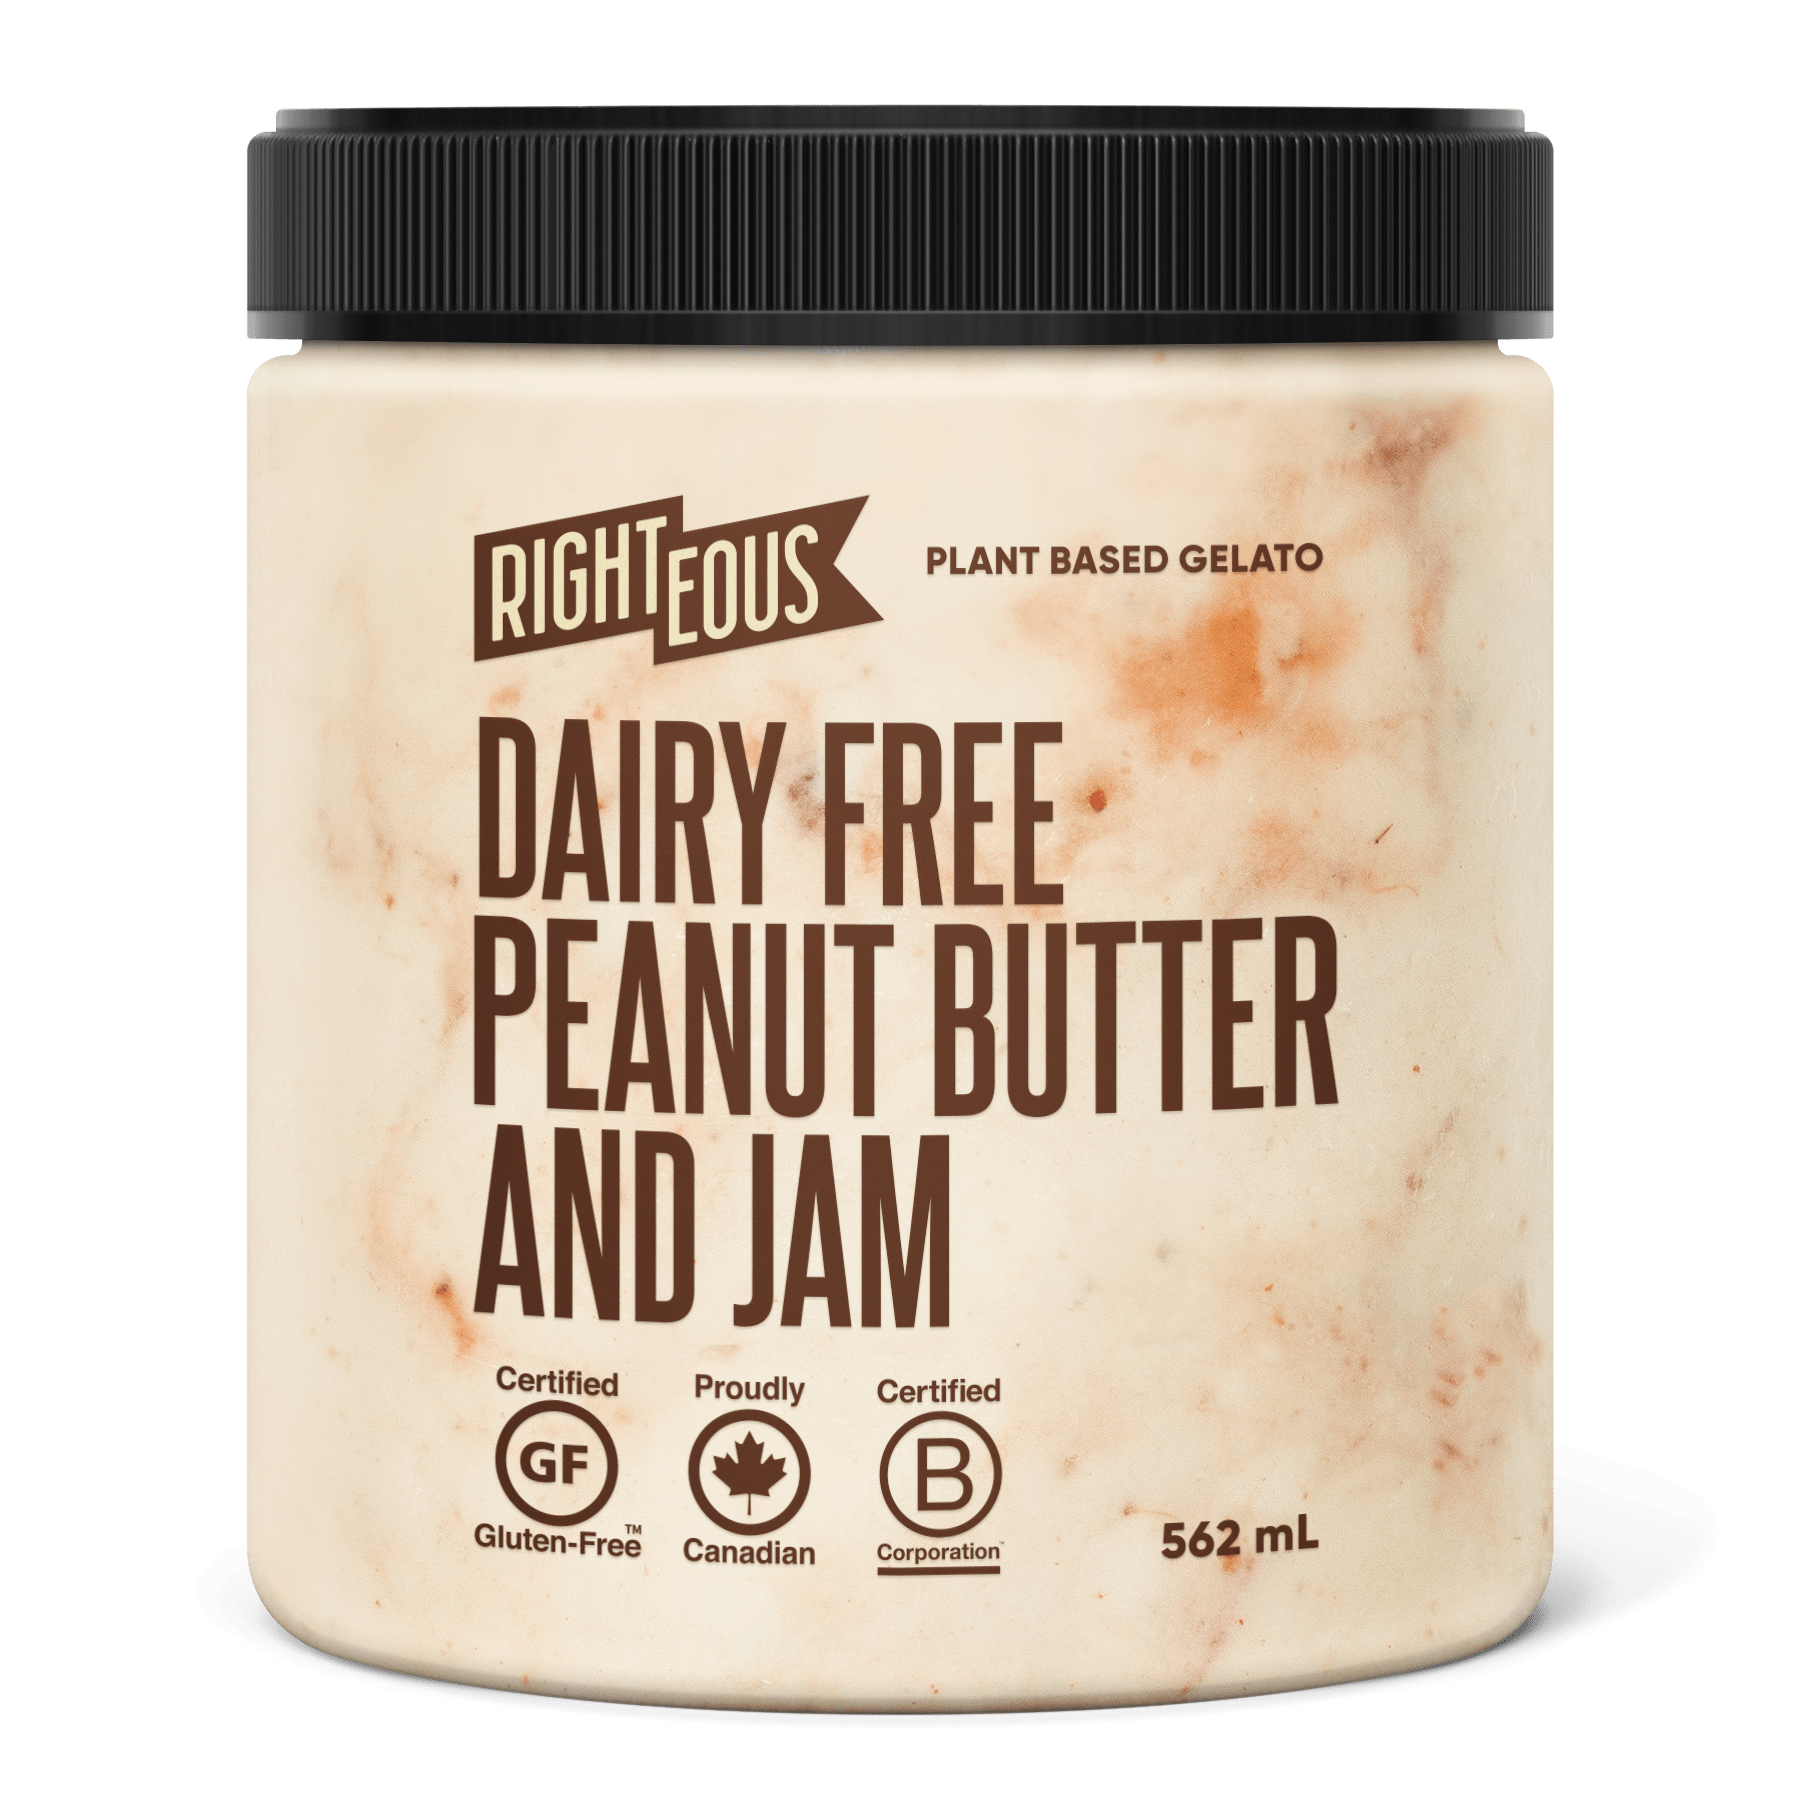 Pint of Righteous Dairy Free Peanut Butter and Jam gelato